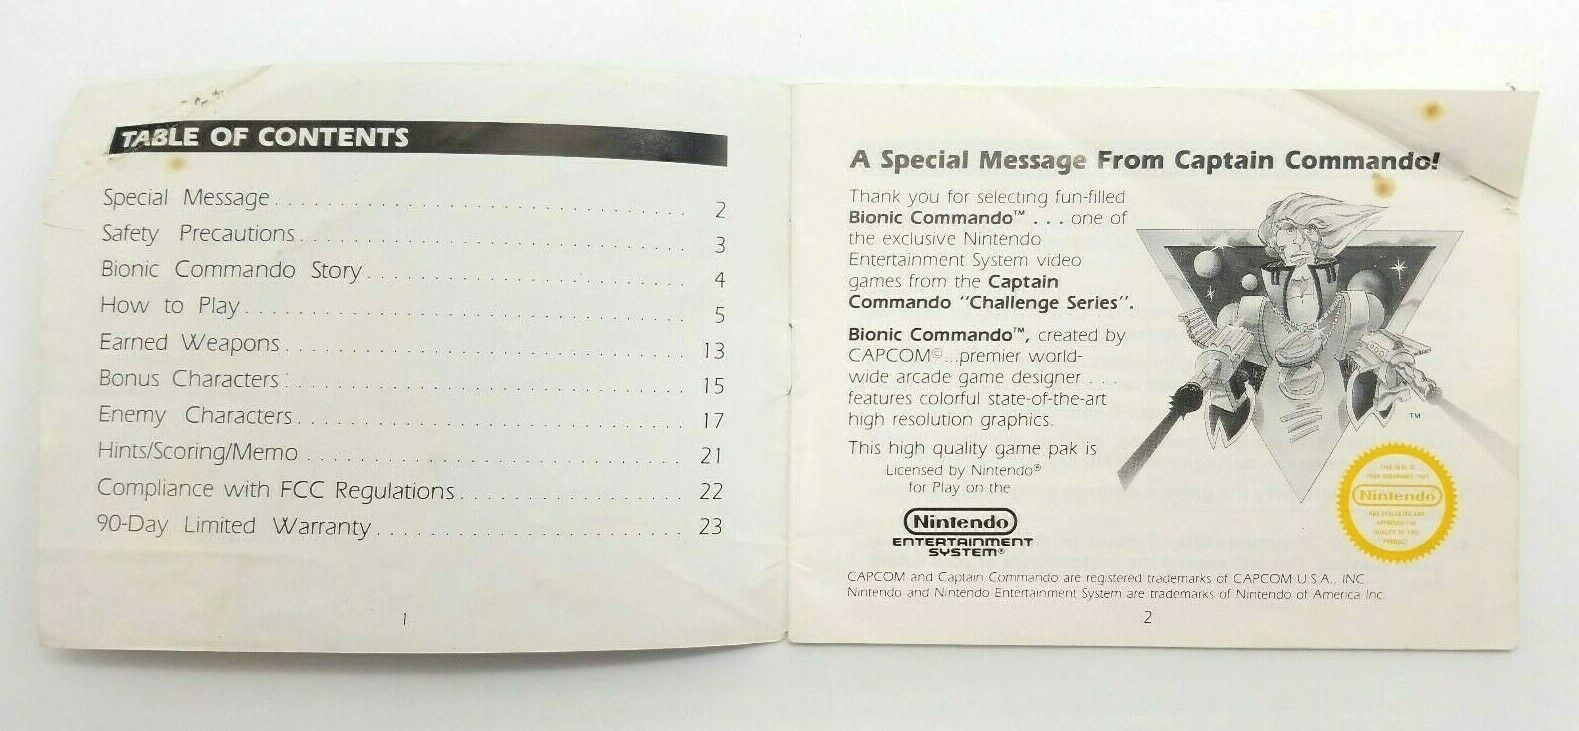 Bionic Commando Instruction Manual NES Nintendo Entertainment System image 2